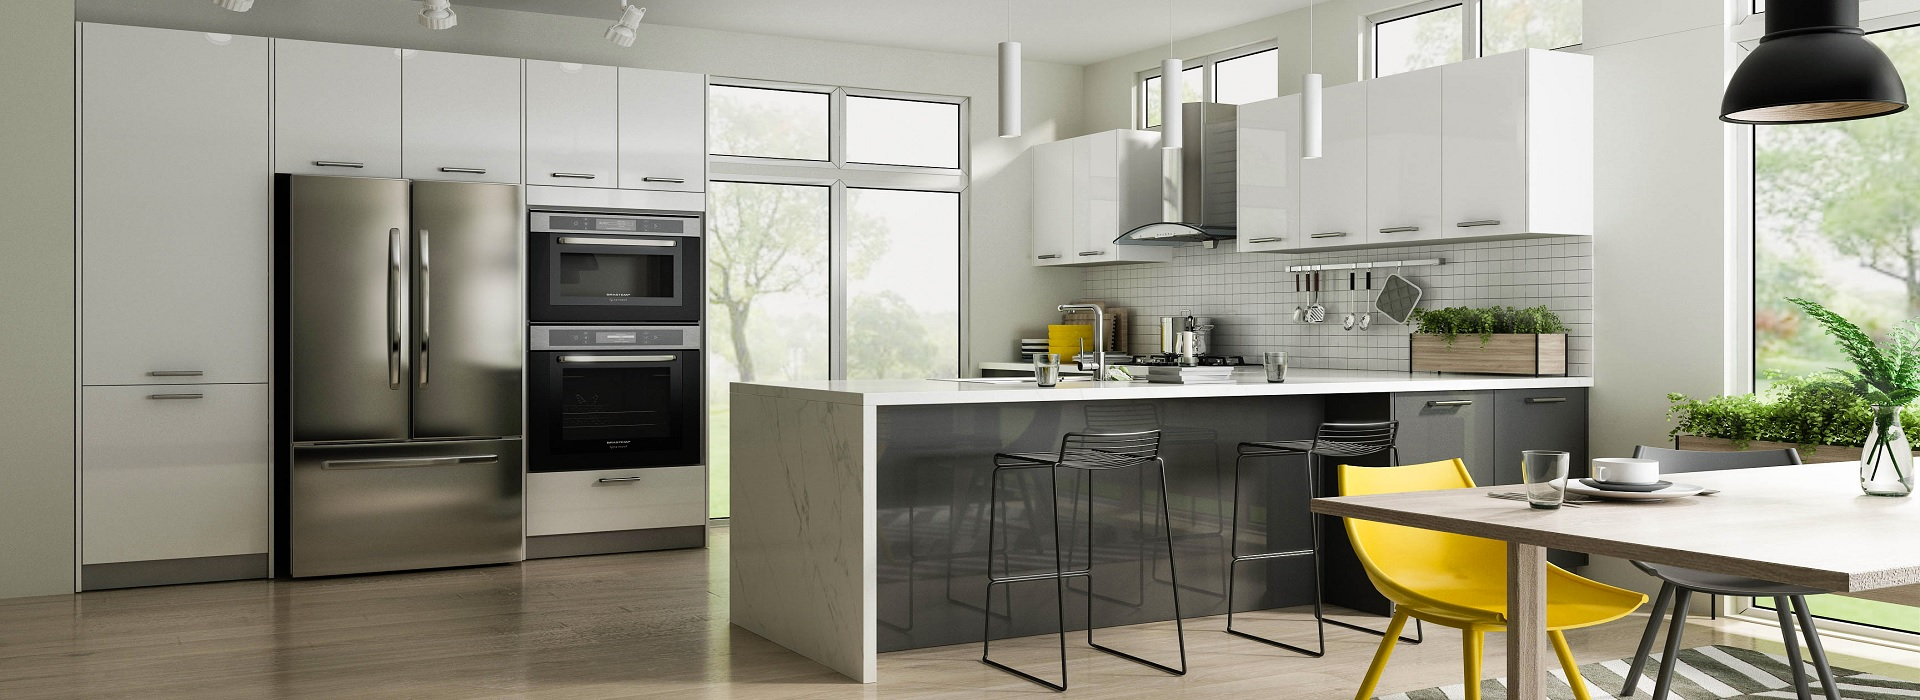 Delight series cabinets